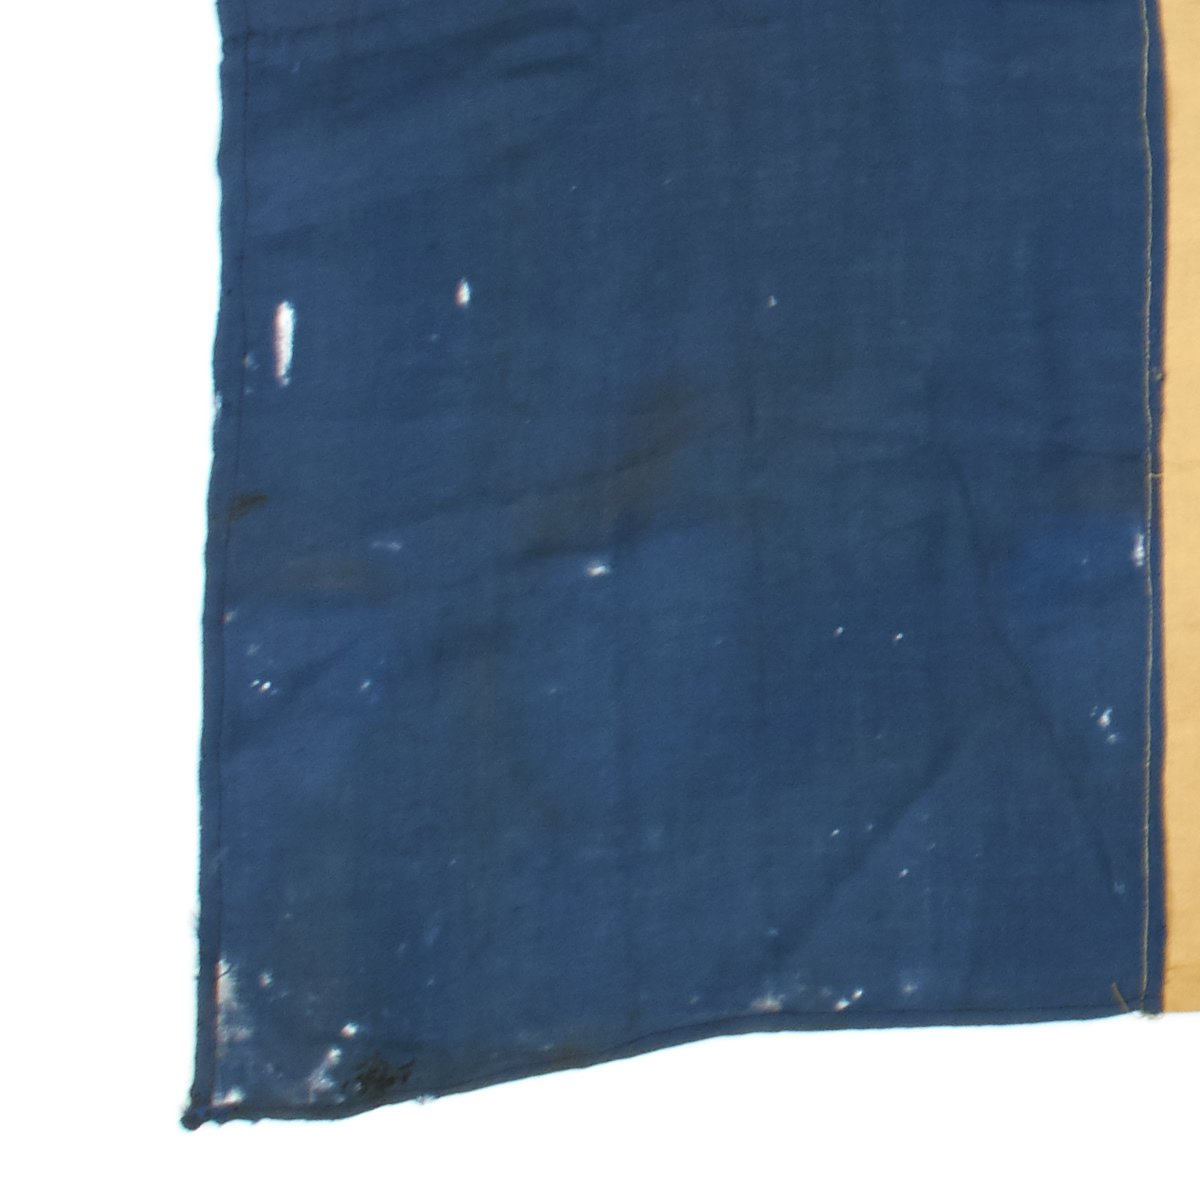 Original French WWII National Flag Captured and Signed by